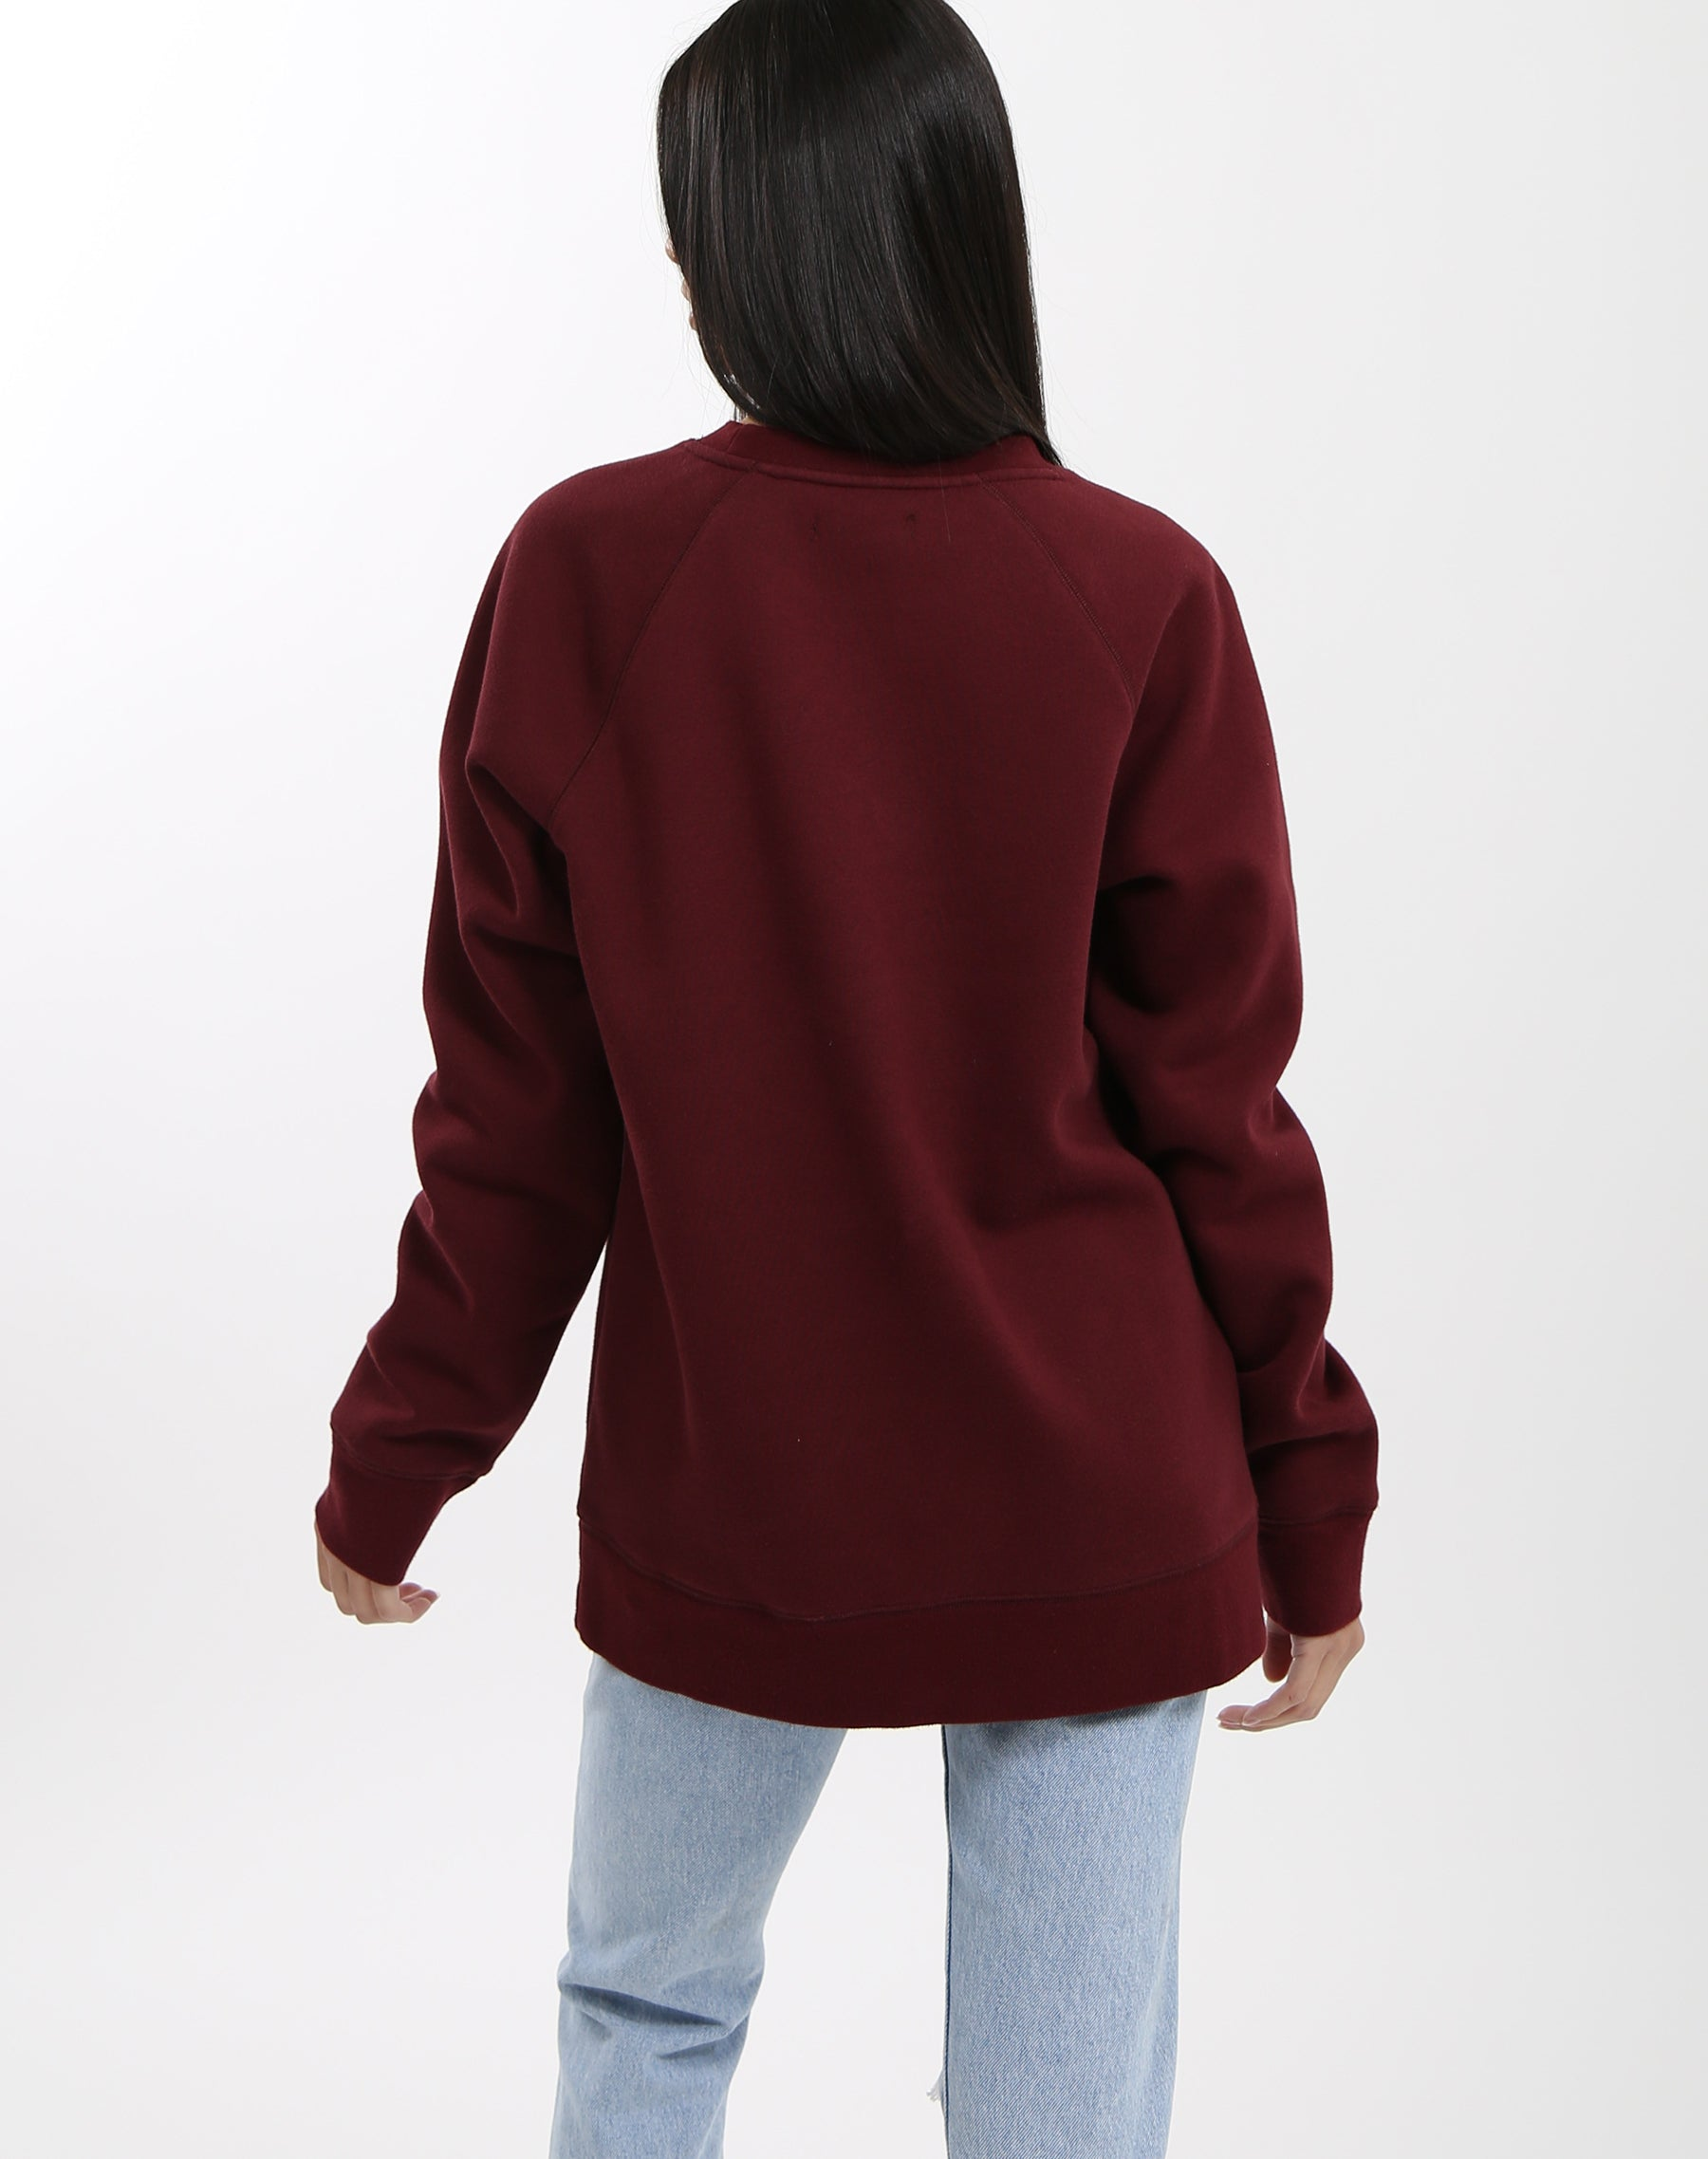 Photo of the back of the Brunette classic crew neck sweatshirt in burgundy  by Brunette the Label.